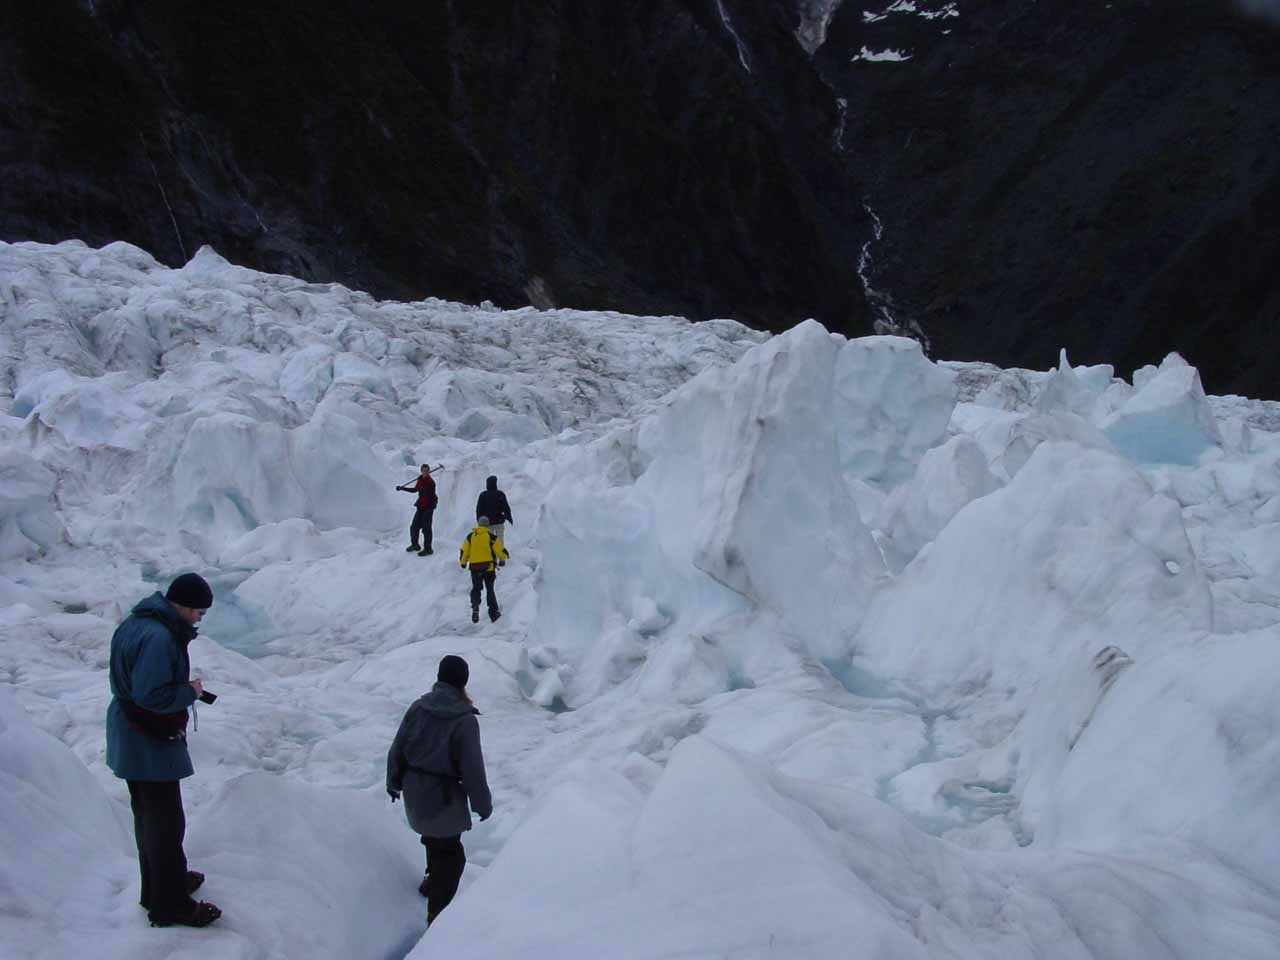 Walking through a more open field of jumbled ice atop the Franz Josef Glacier